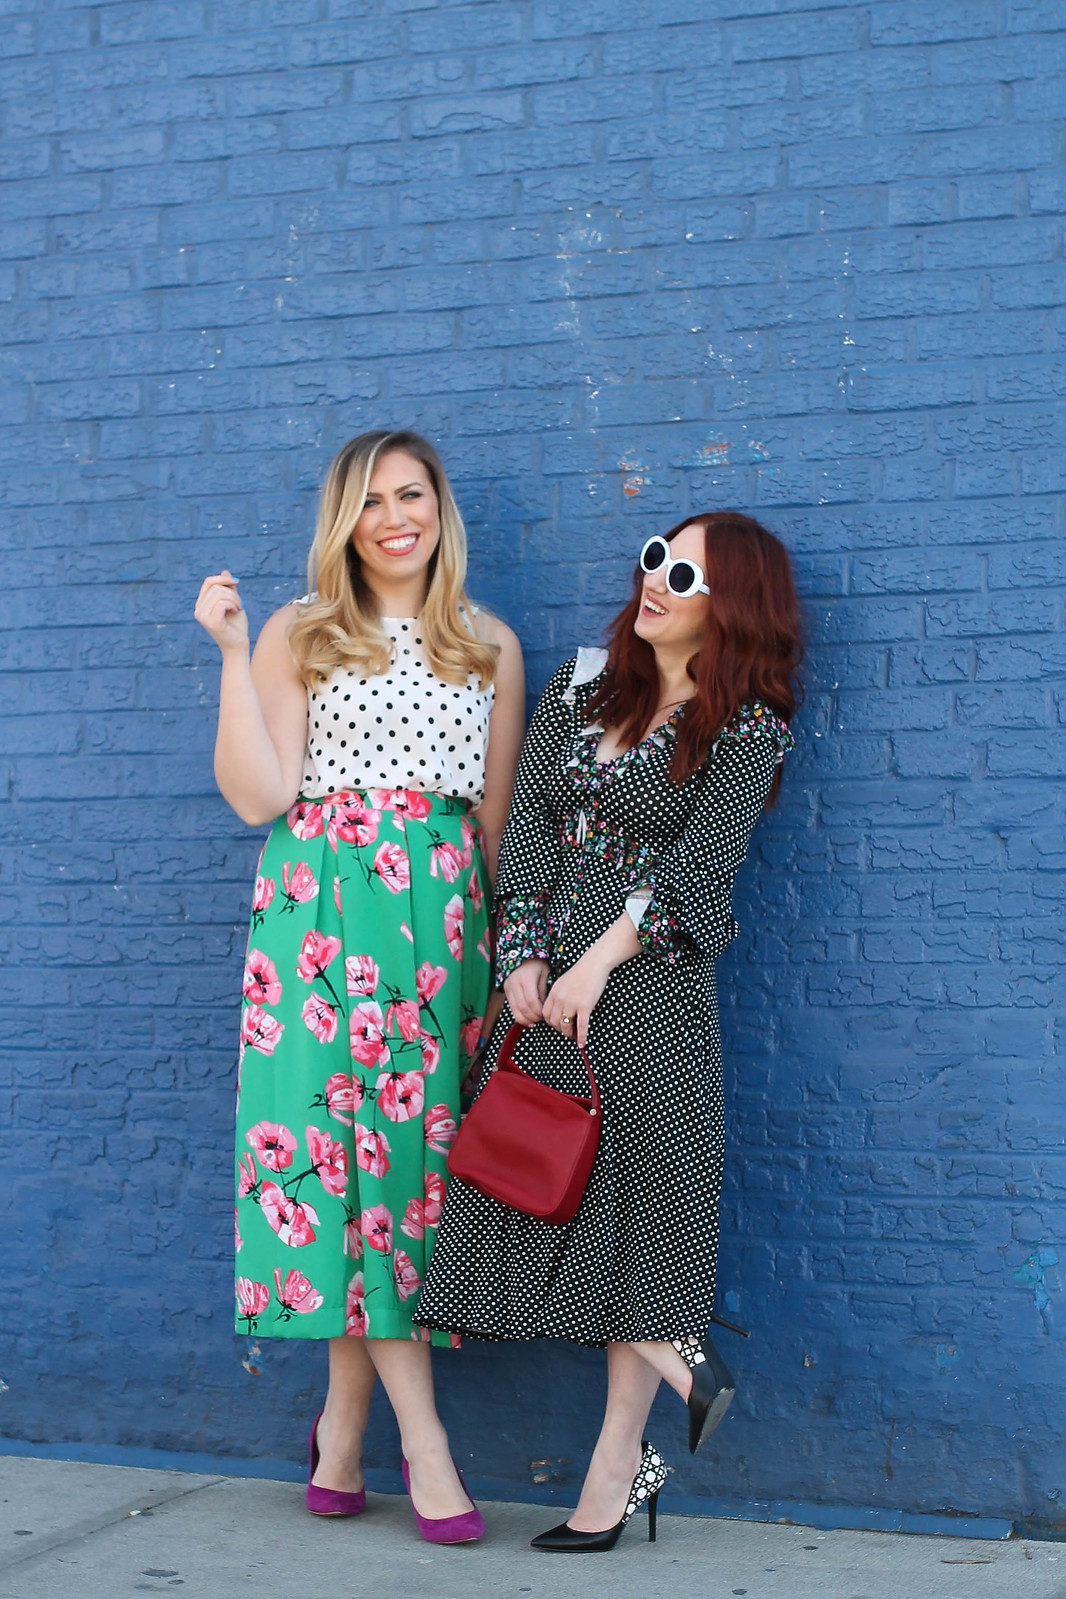 2 Ways to Mix Polka Dots and Floral Print Spring Colorful Outfits New York Style Bloggers Jackie Giardina Living After Midnite